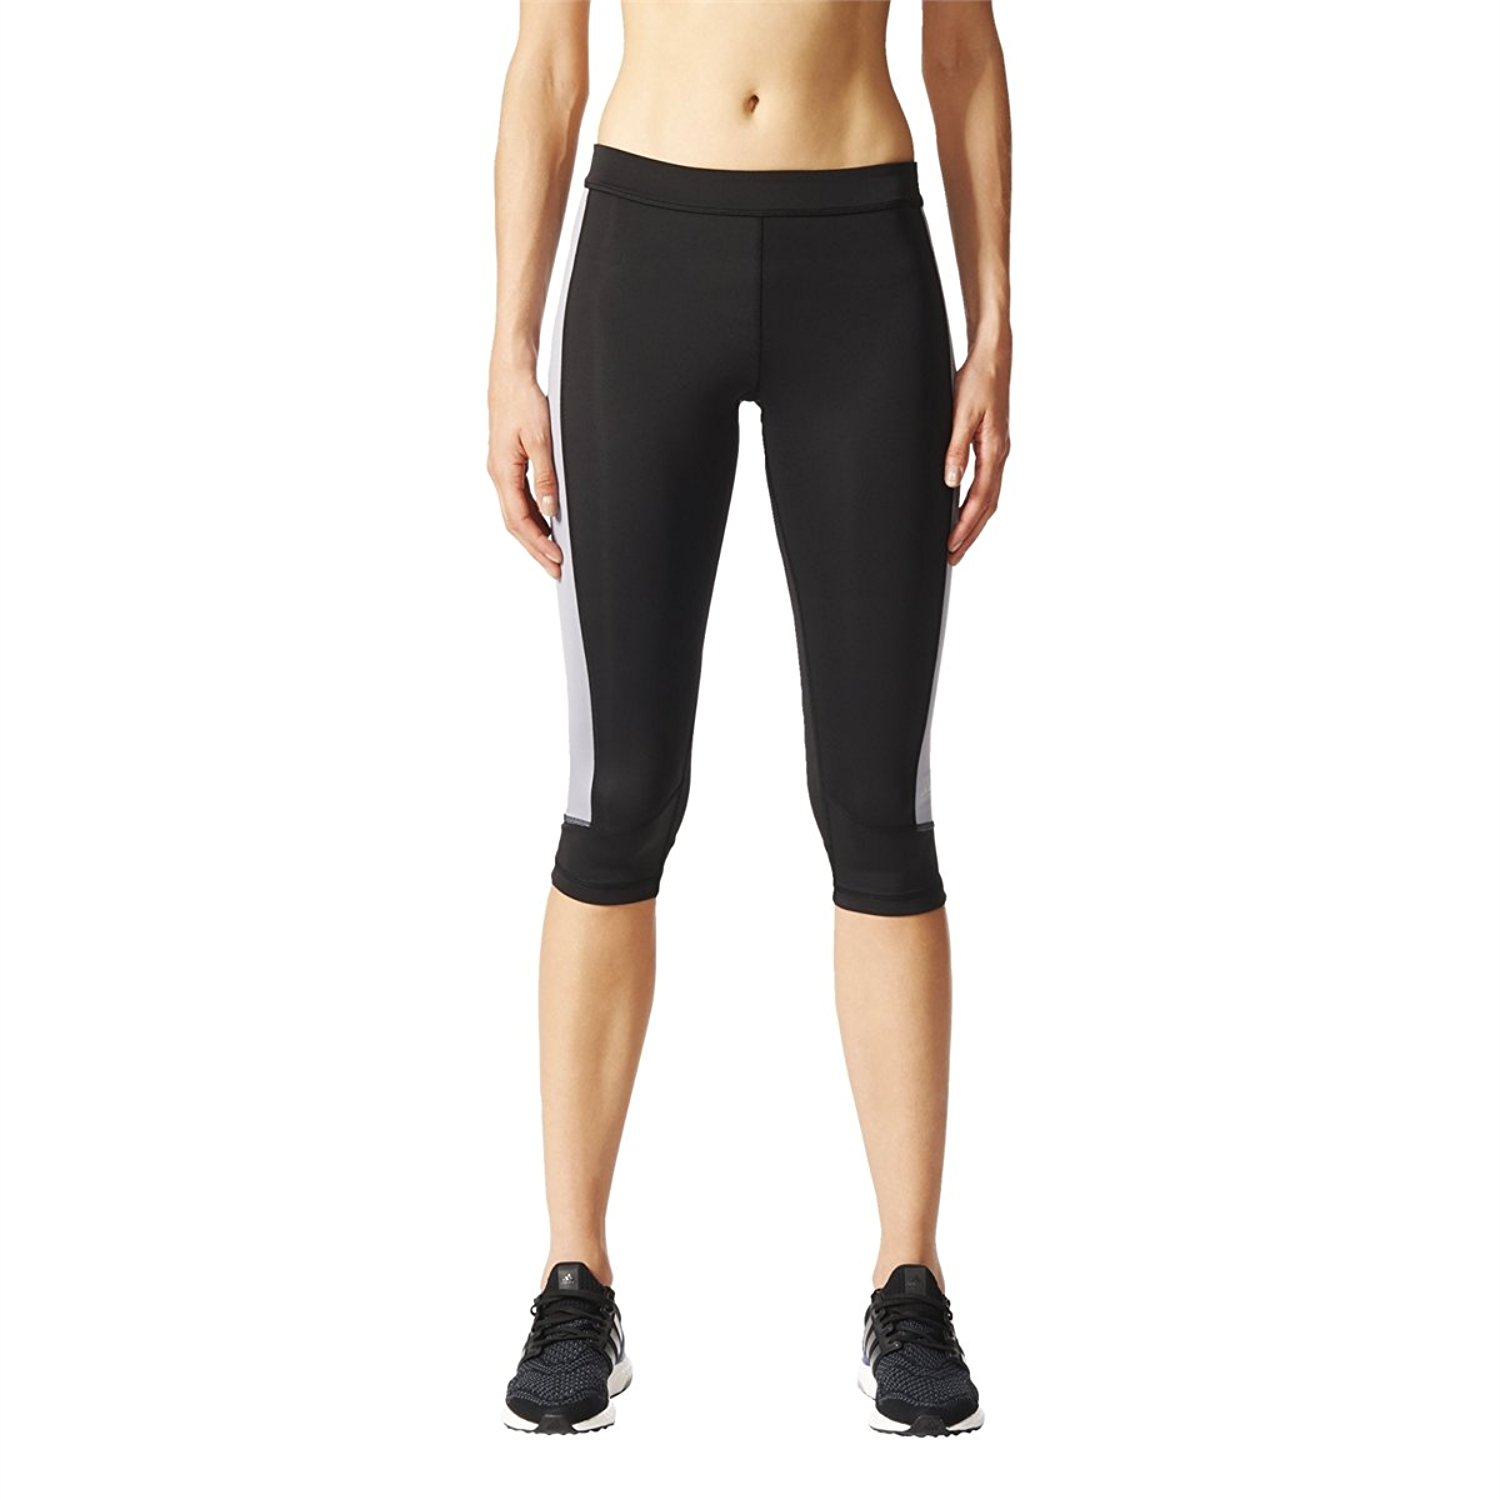 880a7b5505 Cheap Adidas Techfit, find Adidas Techfit deals on line at Alibaba.com